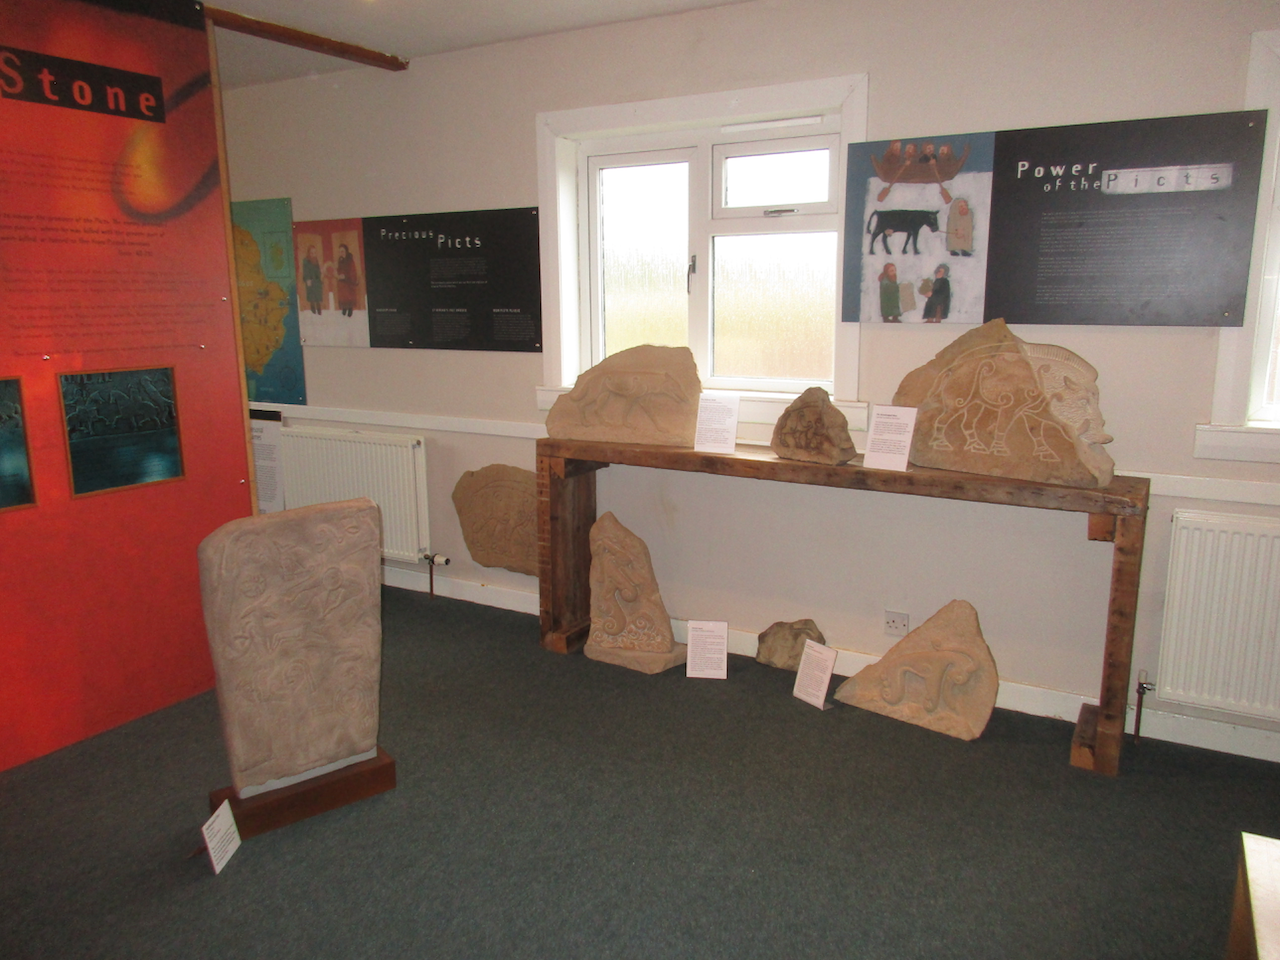 The Pictish Room